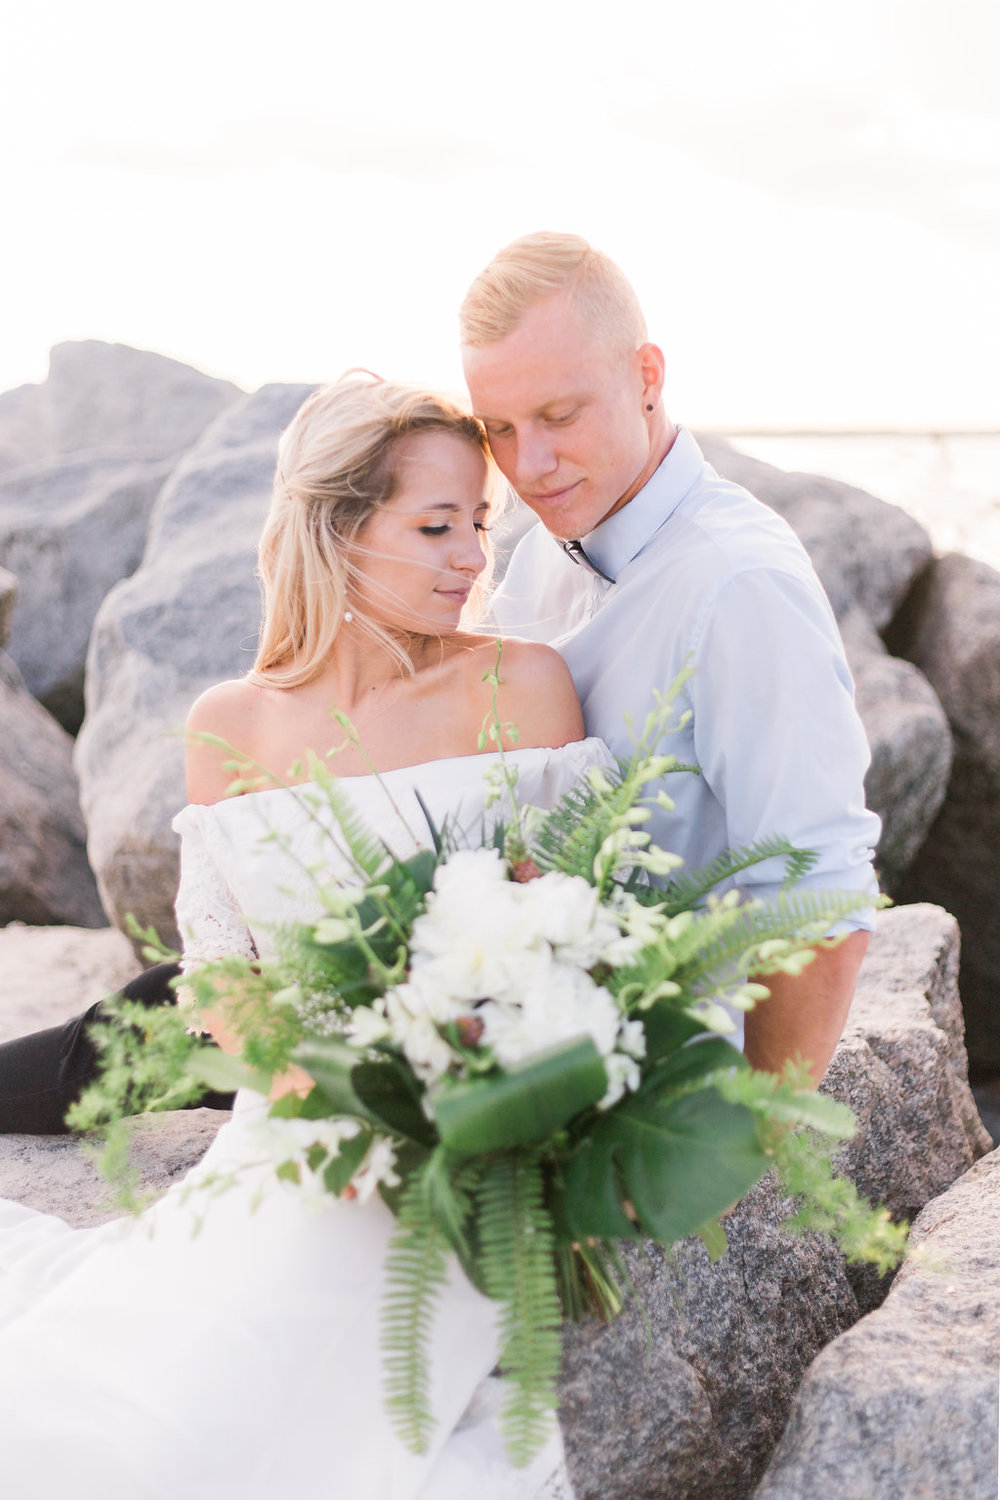 savannah-bridal-shop-last-minute-wedding-planning-details-you-should-start-on-NOW-bluebell-photography-daughters-of-simone-tybee-island-wedding-19.jpg